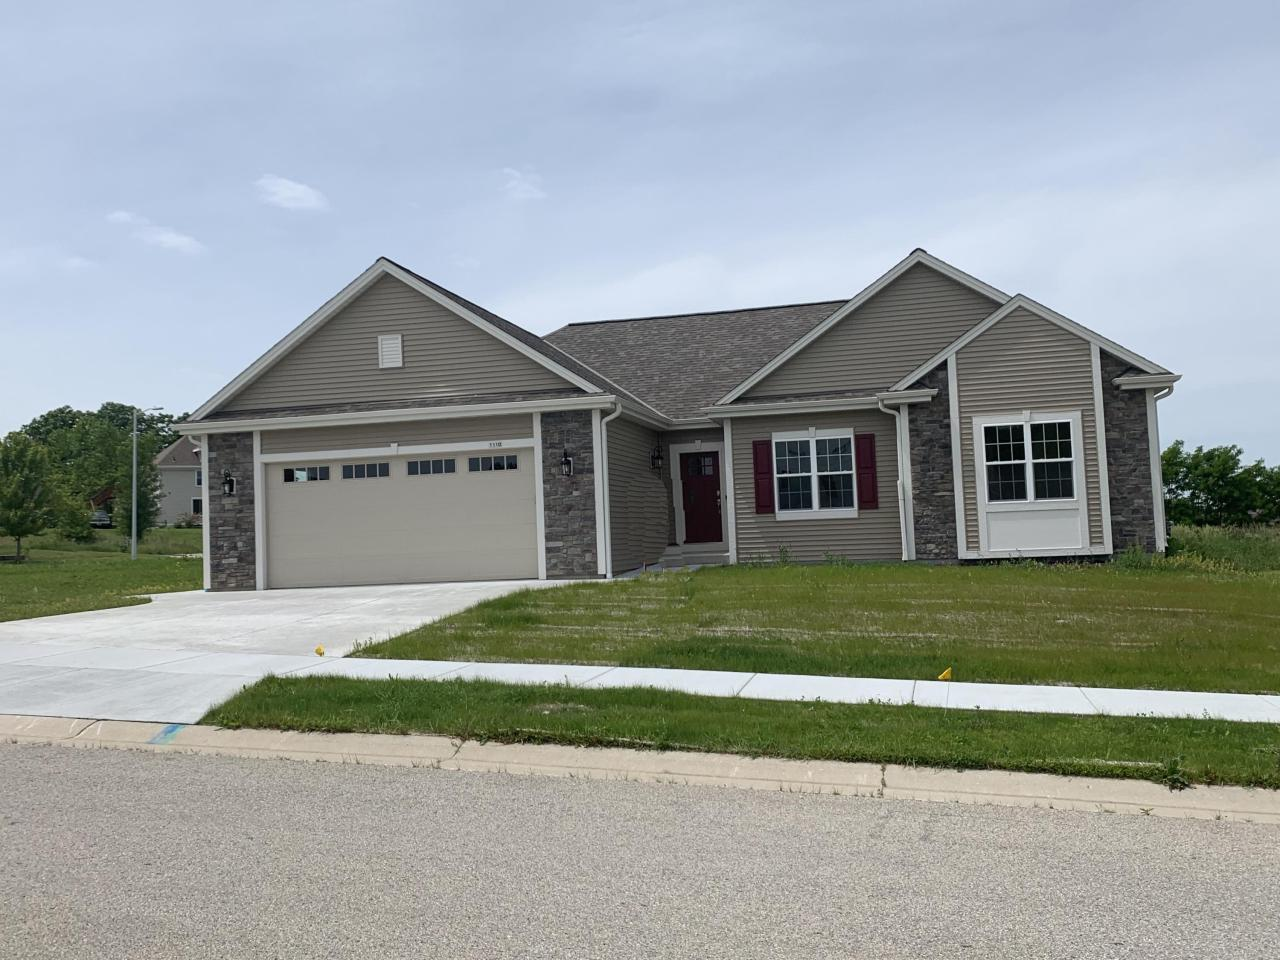 NEW CONSTRUCTION by Stepping Stone Homes. The Emery Model will welcome you with it's open concept. and spacious kitchen. $2500 buyer closing cost credit OR credit towards a patio/deck for an accepted offer by 10/31! This home offers superior quality w/2x6 exterior framing and includes amazing upgrades like soft close dovetail cabinetry, quartz and marble counter tops, double sinks in the bathrooms, upgraded flooring, 8 foot garage doors and more! This home comes equipped with Smart Home Technology, including integrated lighting, door locks, ecobee smart thermostat, video doorbell, Lift Master garage door, all of which you can control from your mobile device!  Look inside your refrigerator while you're at the grocery store!  Make sure your garage door is closed and the lights are off when